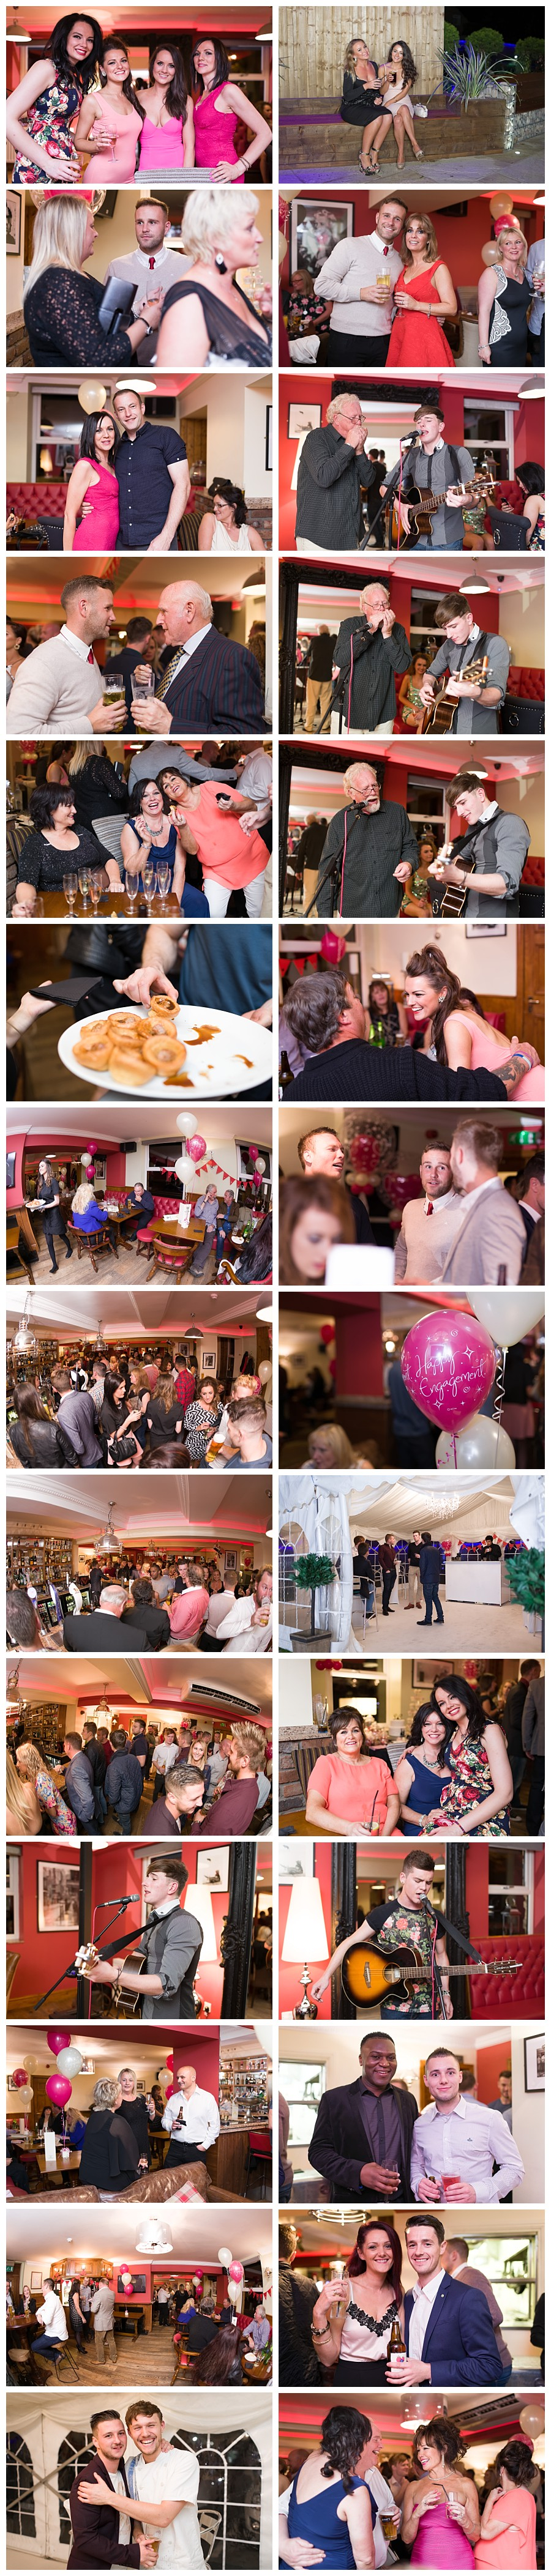 Event photography Baildon, photographer party Baildon, Baildon event photography